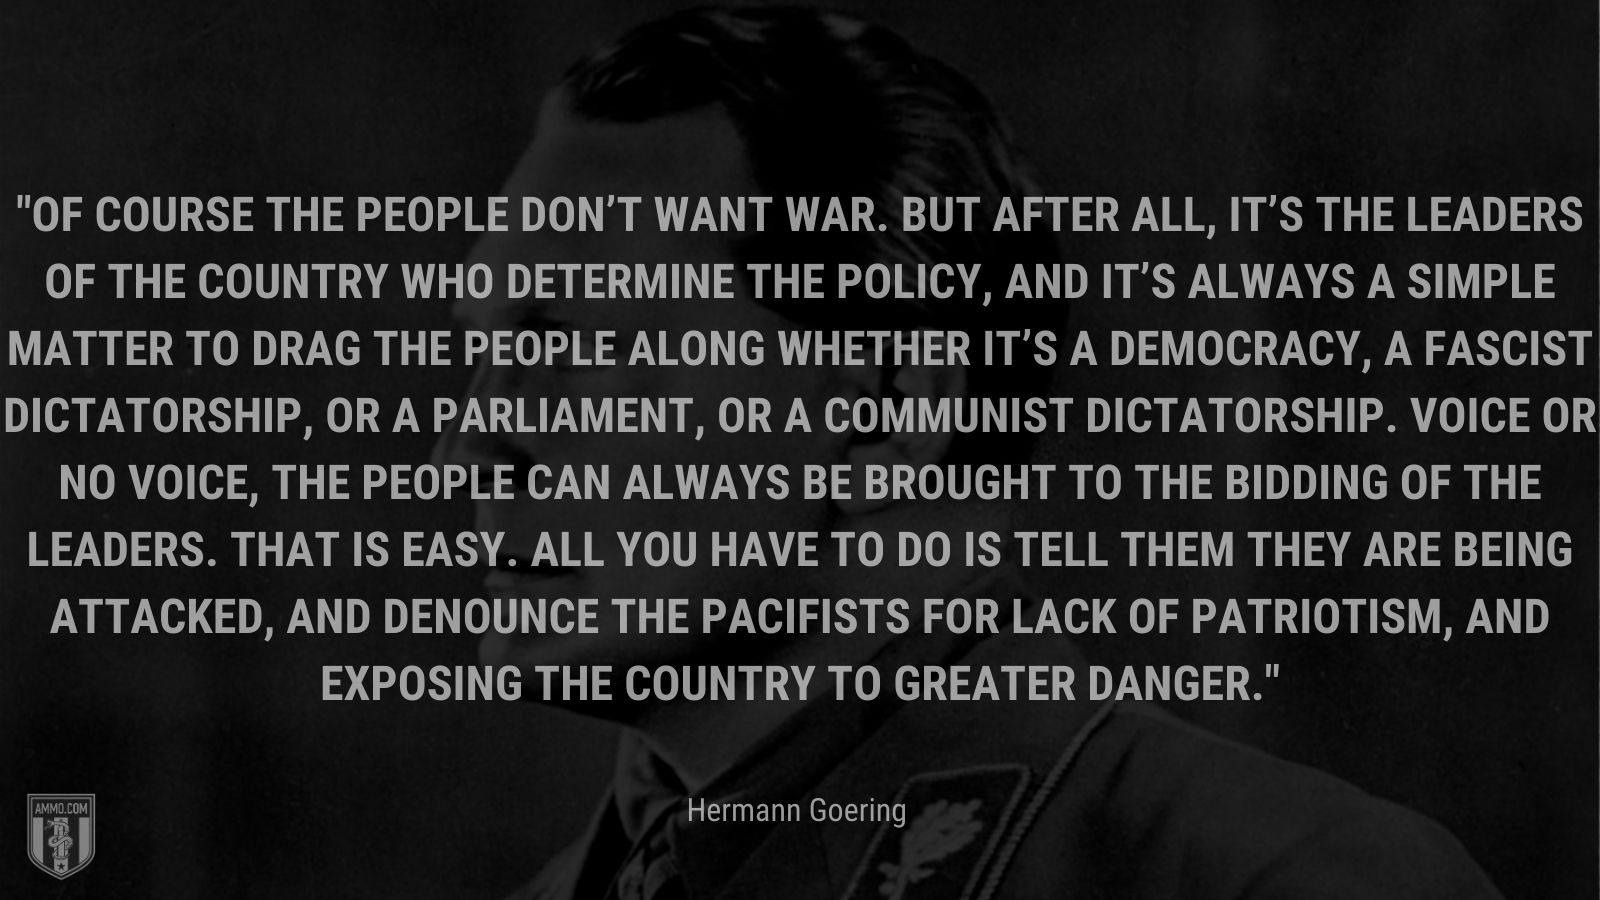 """""""Of course the people don't want war. But after all, it's the leaders of the country who determine the policy, and it's always a simple matter to drag the people along whether it's a democracy, a fascist dictatorship, or a parliament, or a communist dictatorship. Voice or no voice, the people can always be brought to the bidding of the leaders. That is easy. All you have to do is tell them they are being attacked, and denounce the pacifists for lack of patriotism, and exposing the country to greater danger."""" - Hermann Goering"""